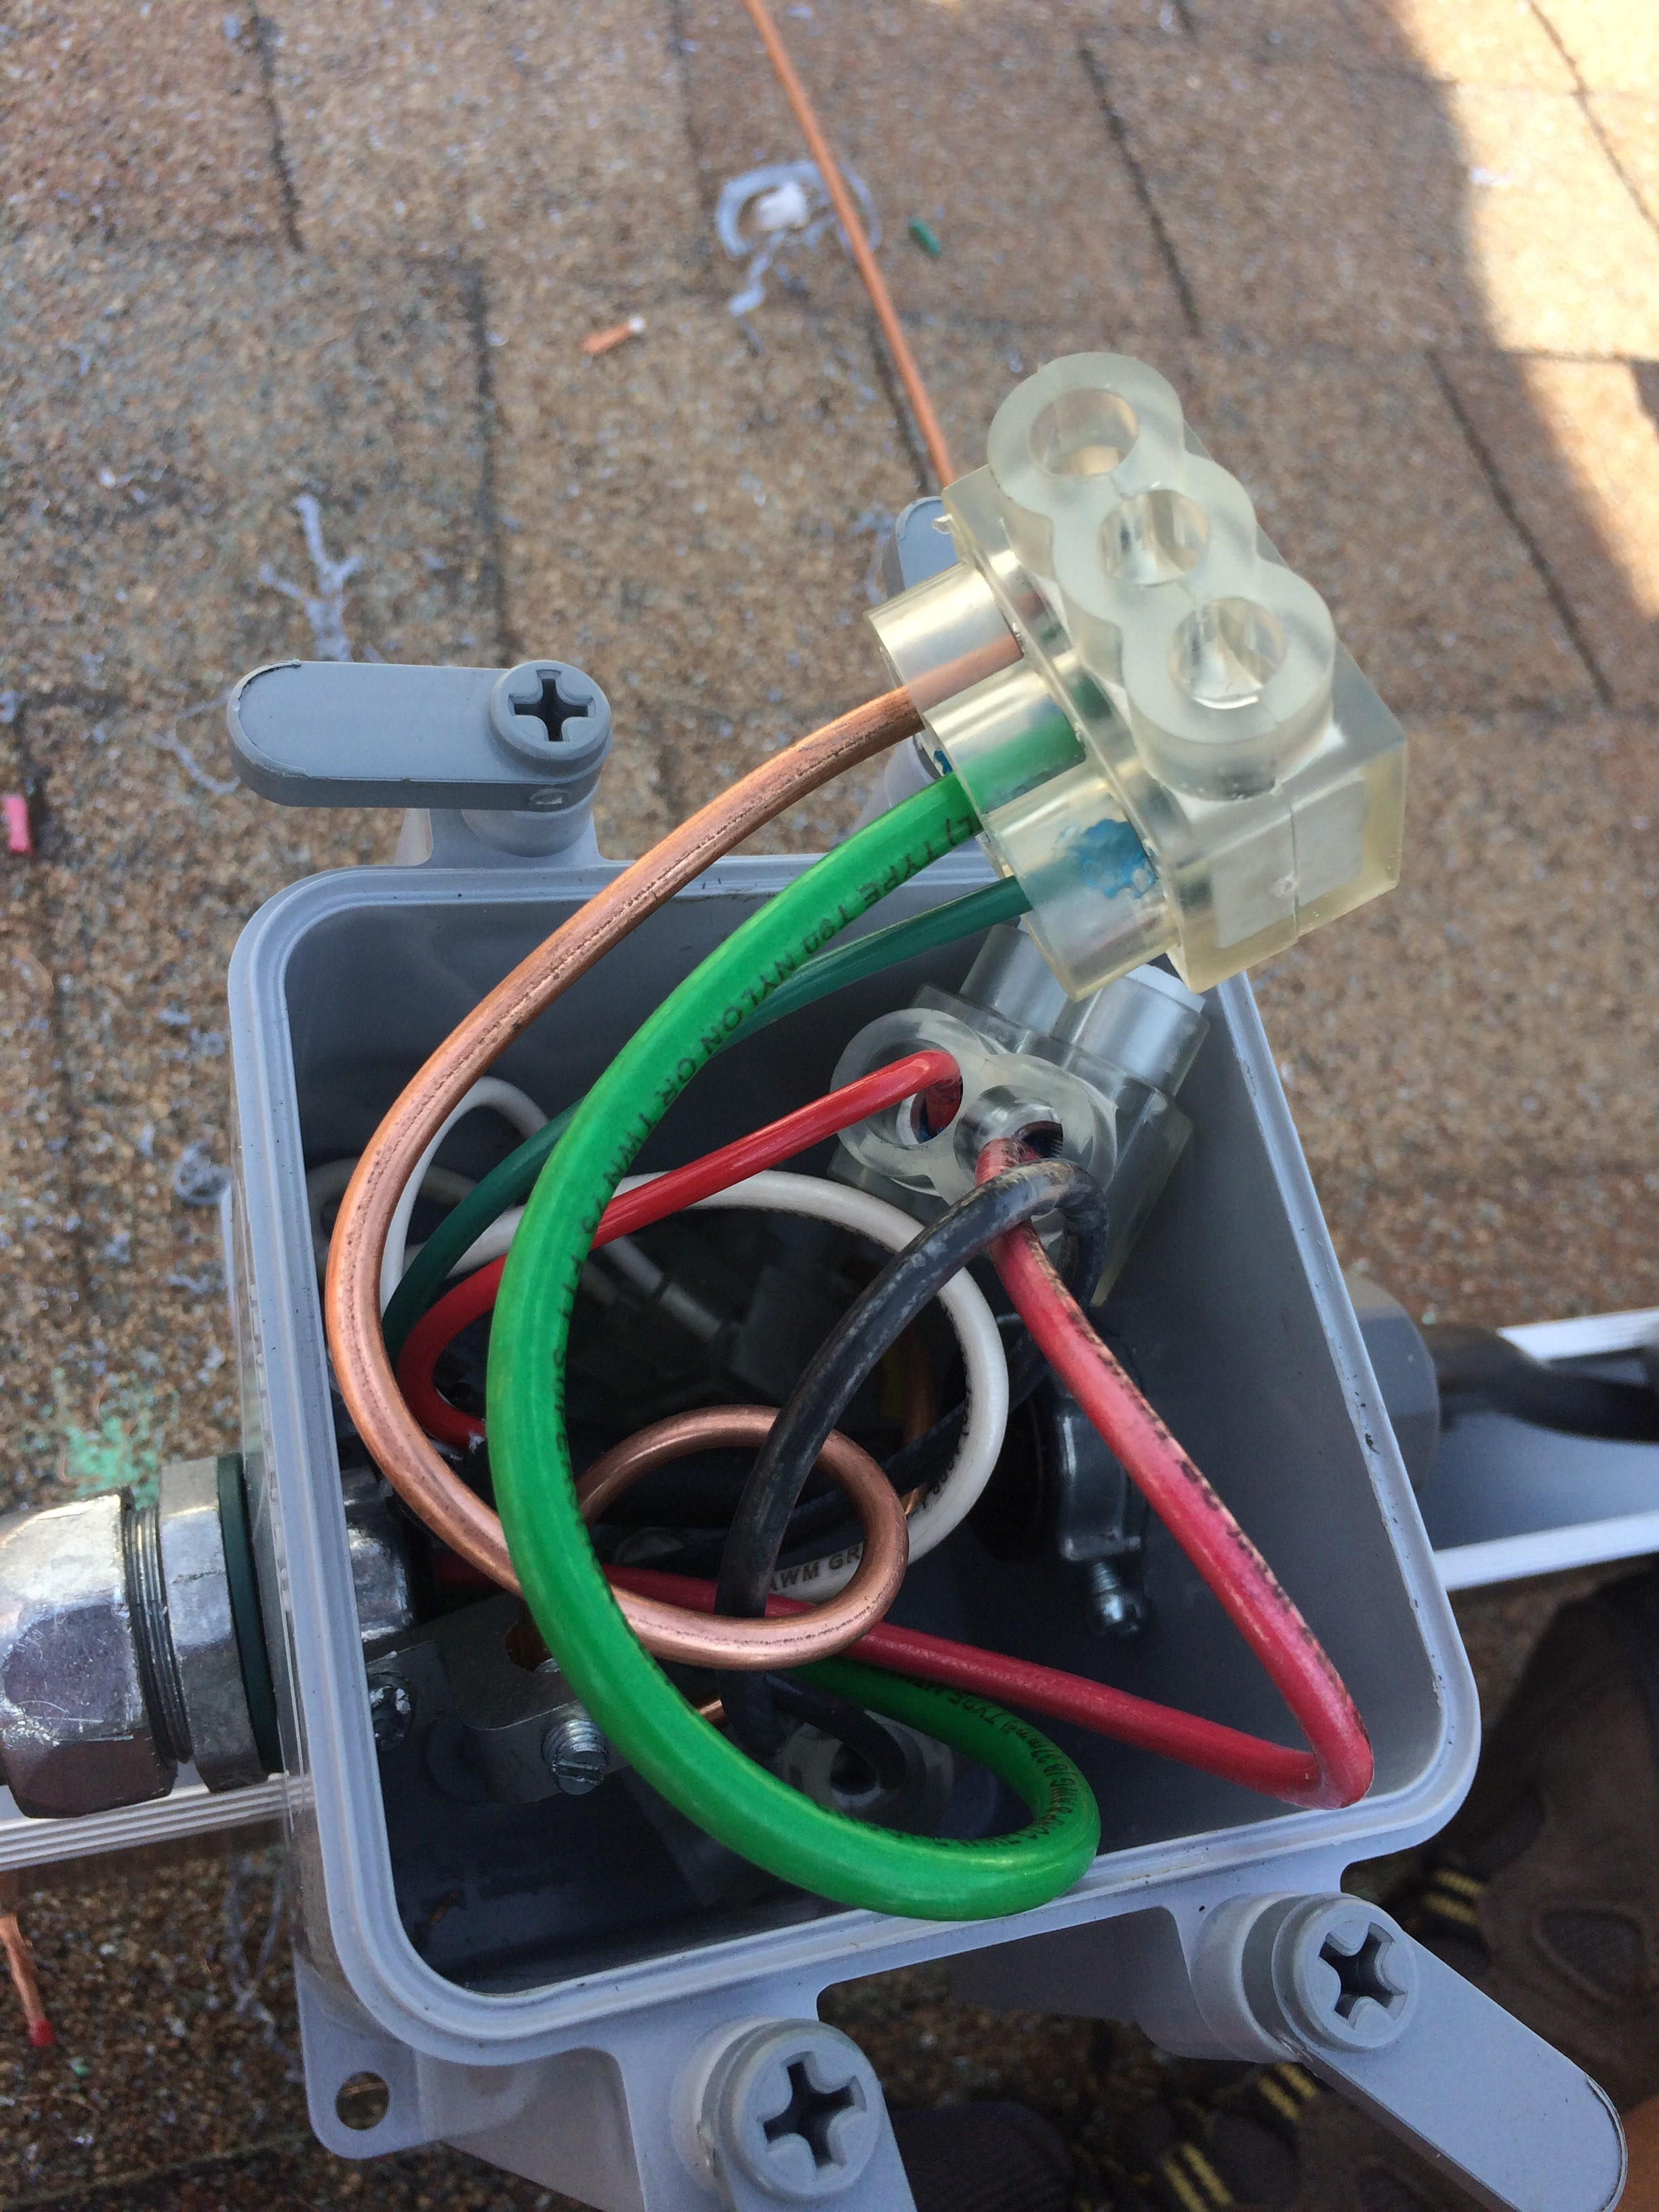 ground wires connected by a multiport